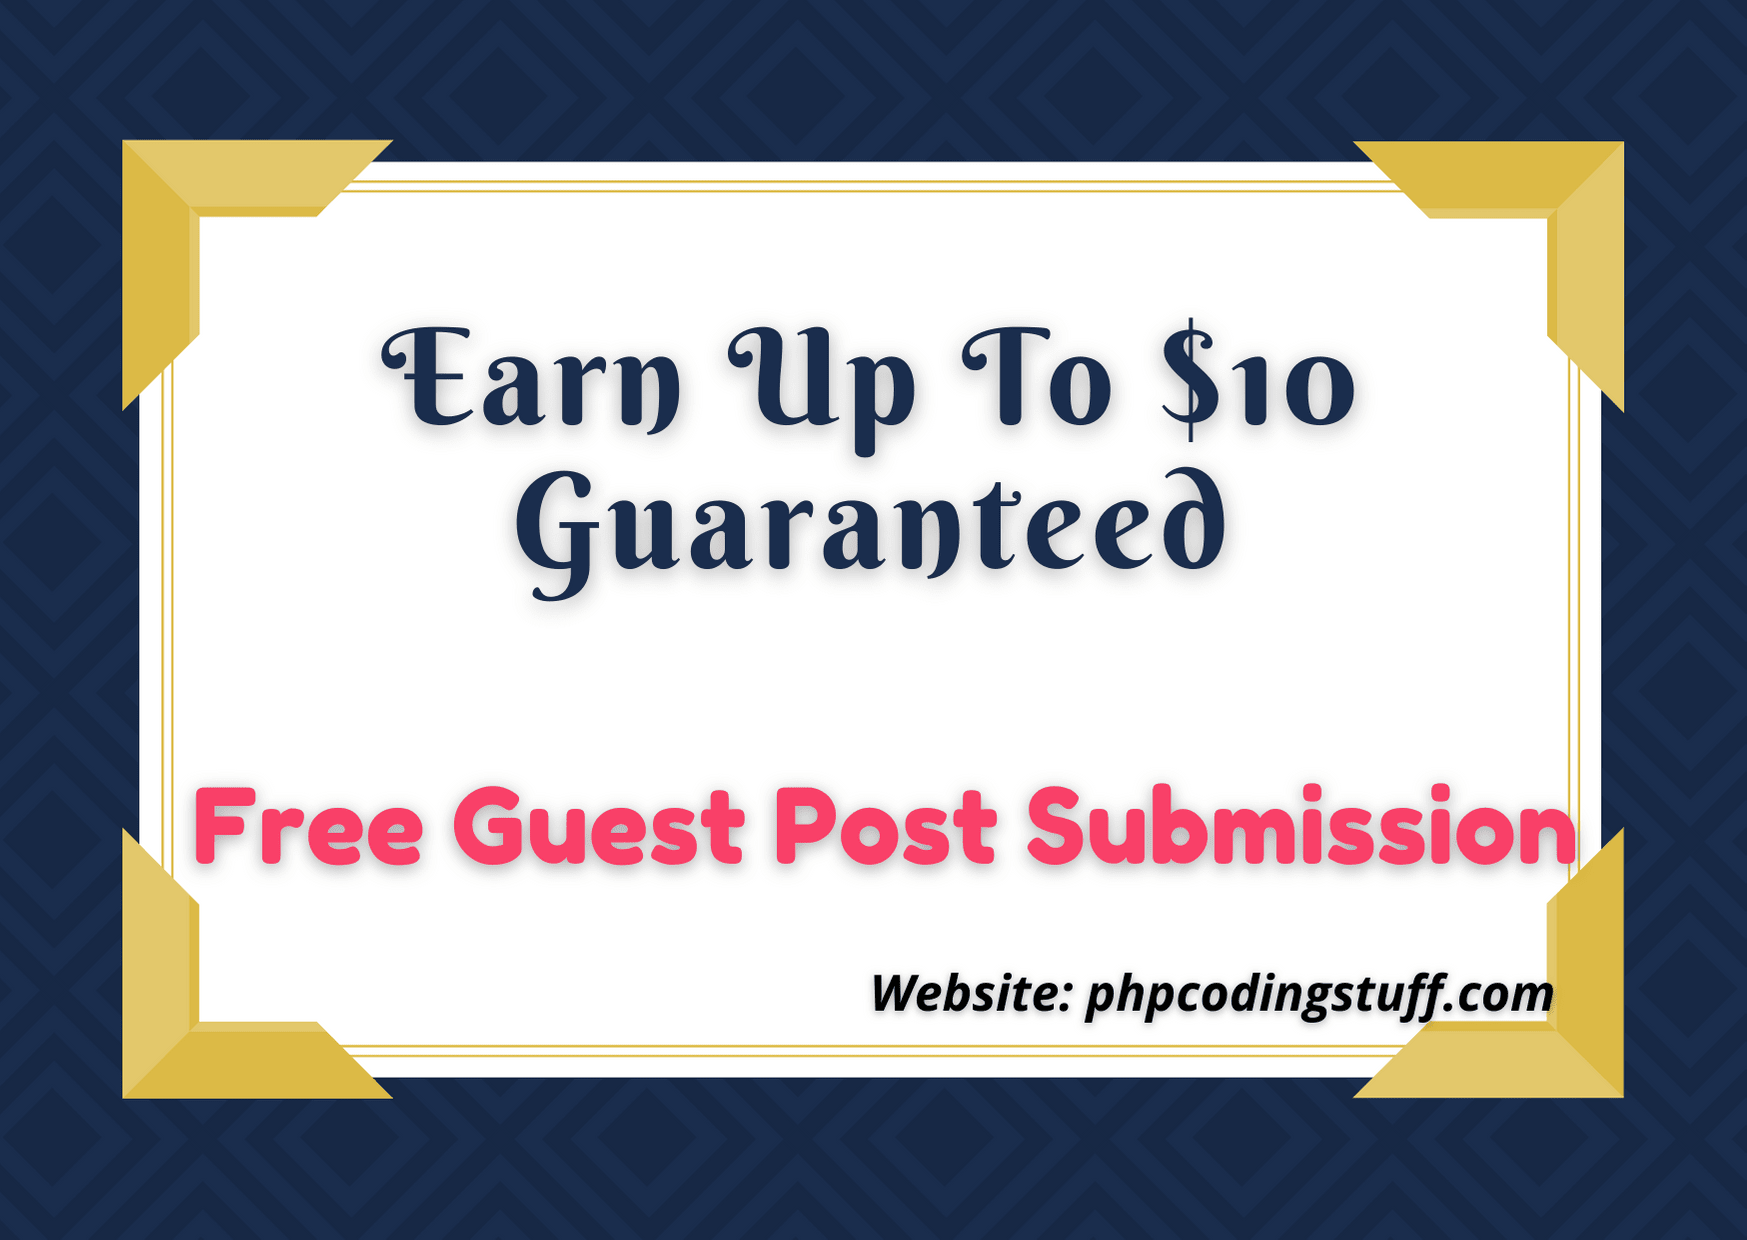 Free Guest Post Submission And Earn Up to $10